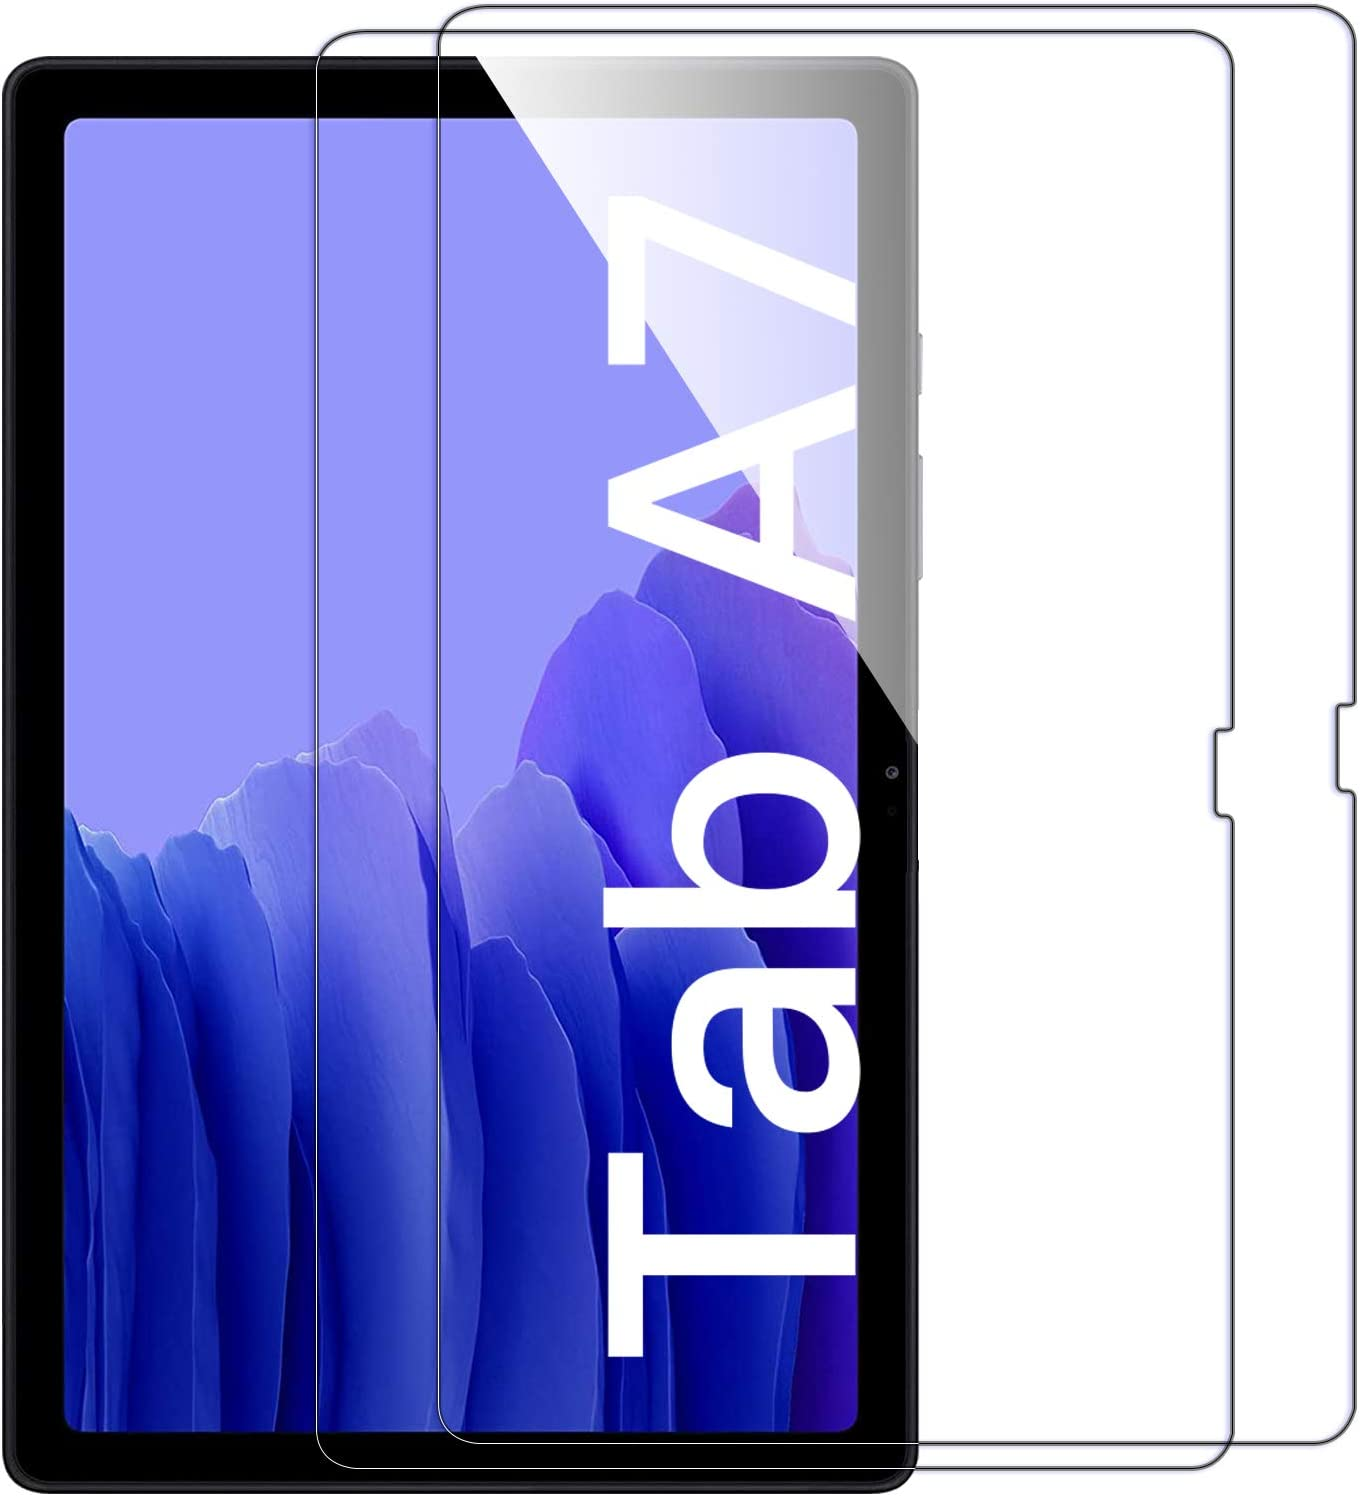 [2 Pack]ZoneFoker Screen Protector for Samsung Galaxy Tab A7 10.4 inch 2020 tablet, [Anti-Scratch][Easy Installation][Bubble Free] Tempered Glass for Galaxy Tab A7 10.4 2020 SM-T500/T505/T507